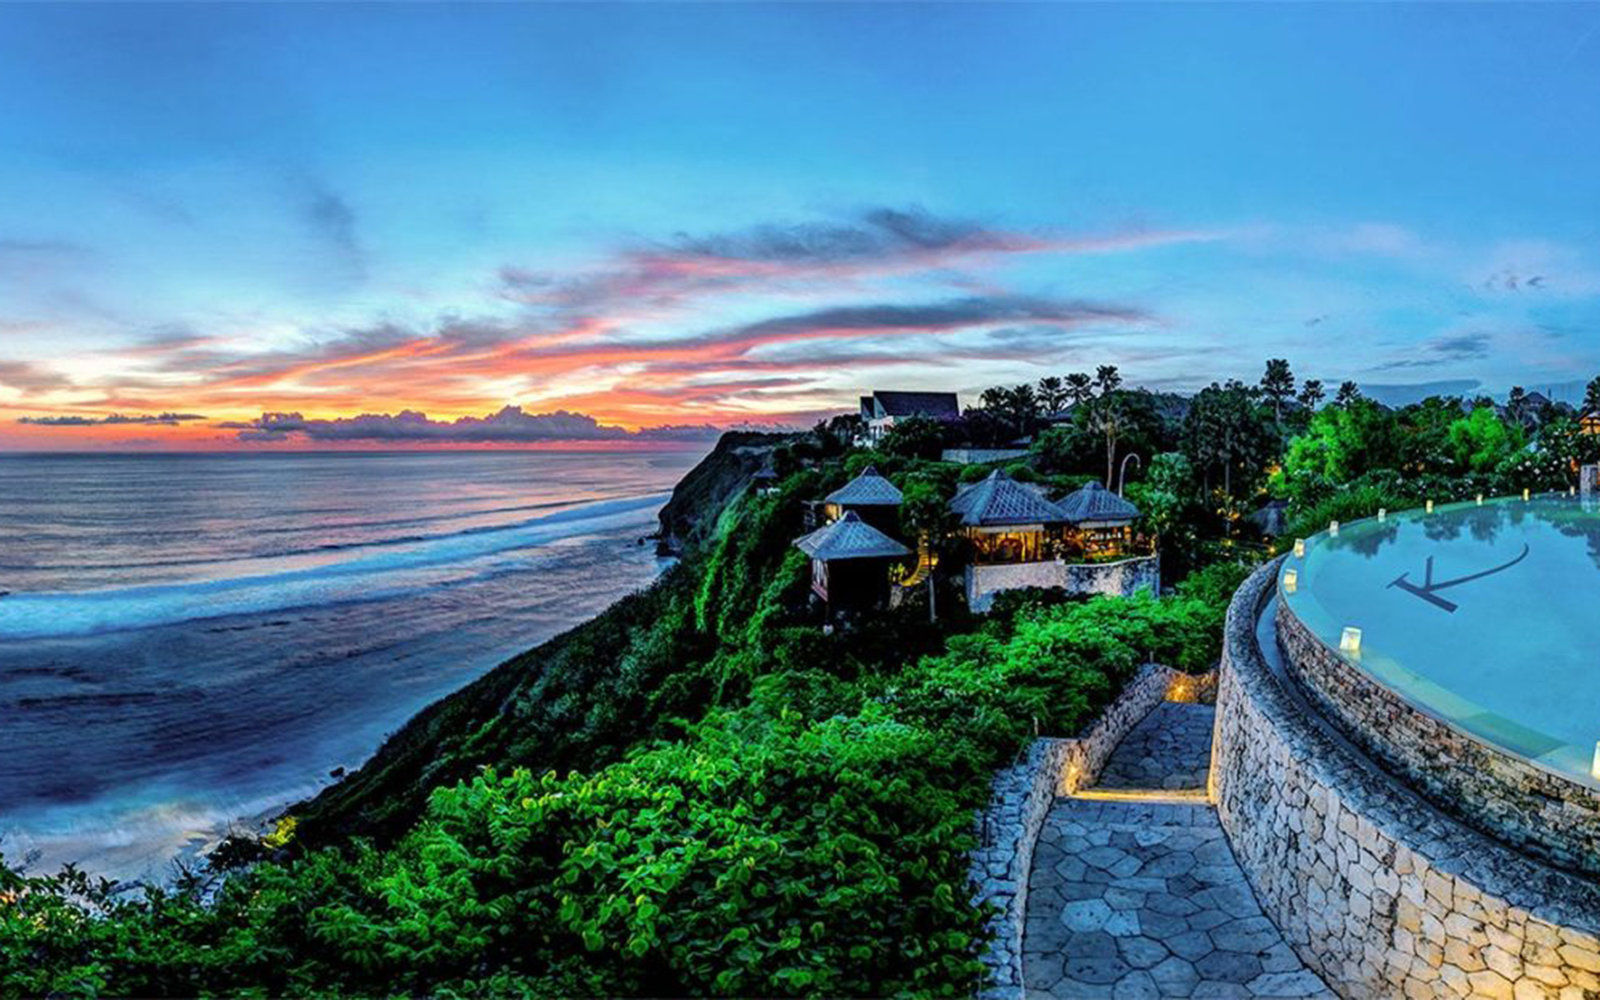 Best Hotels In Bali For Sunset